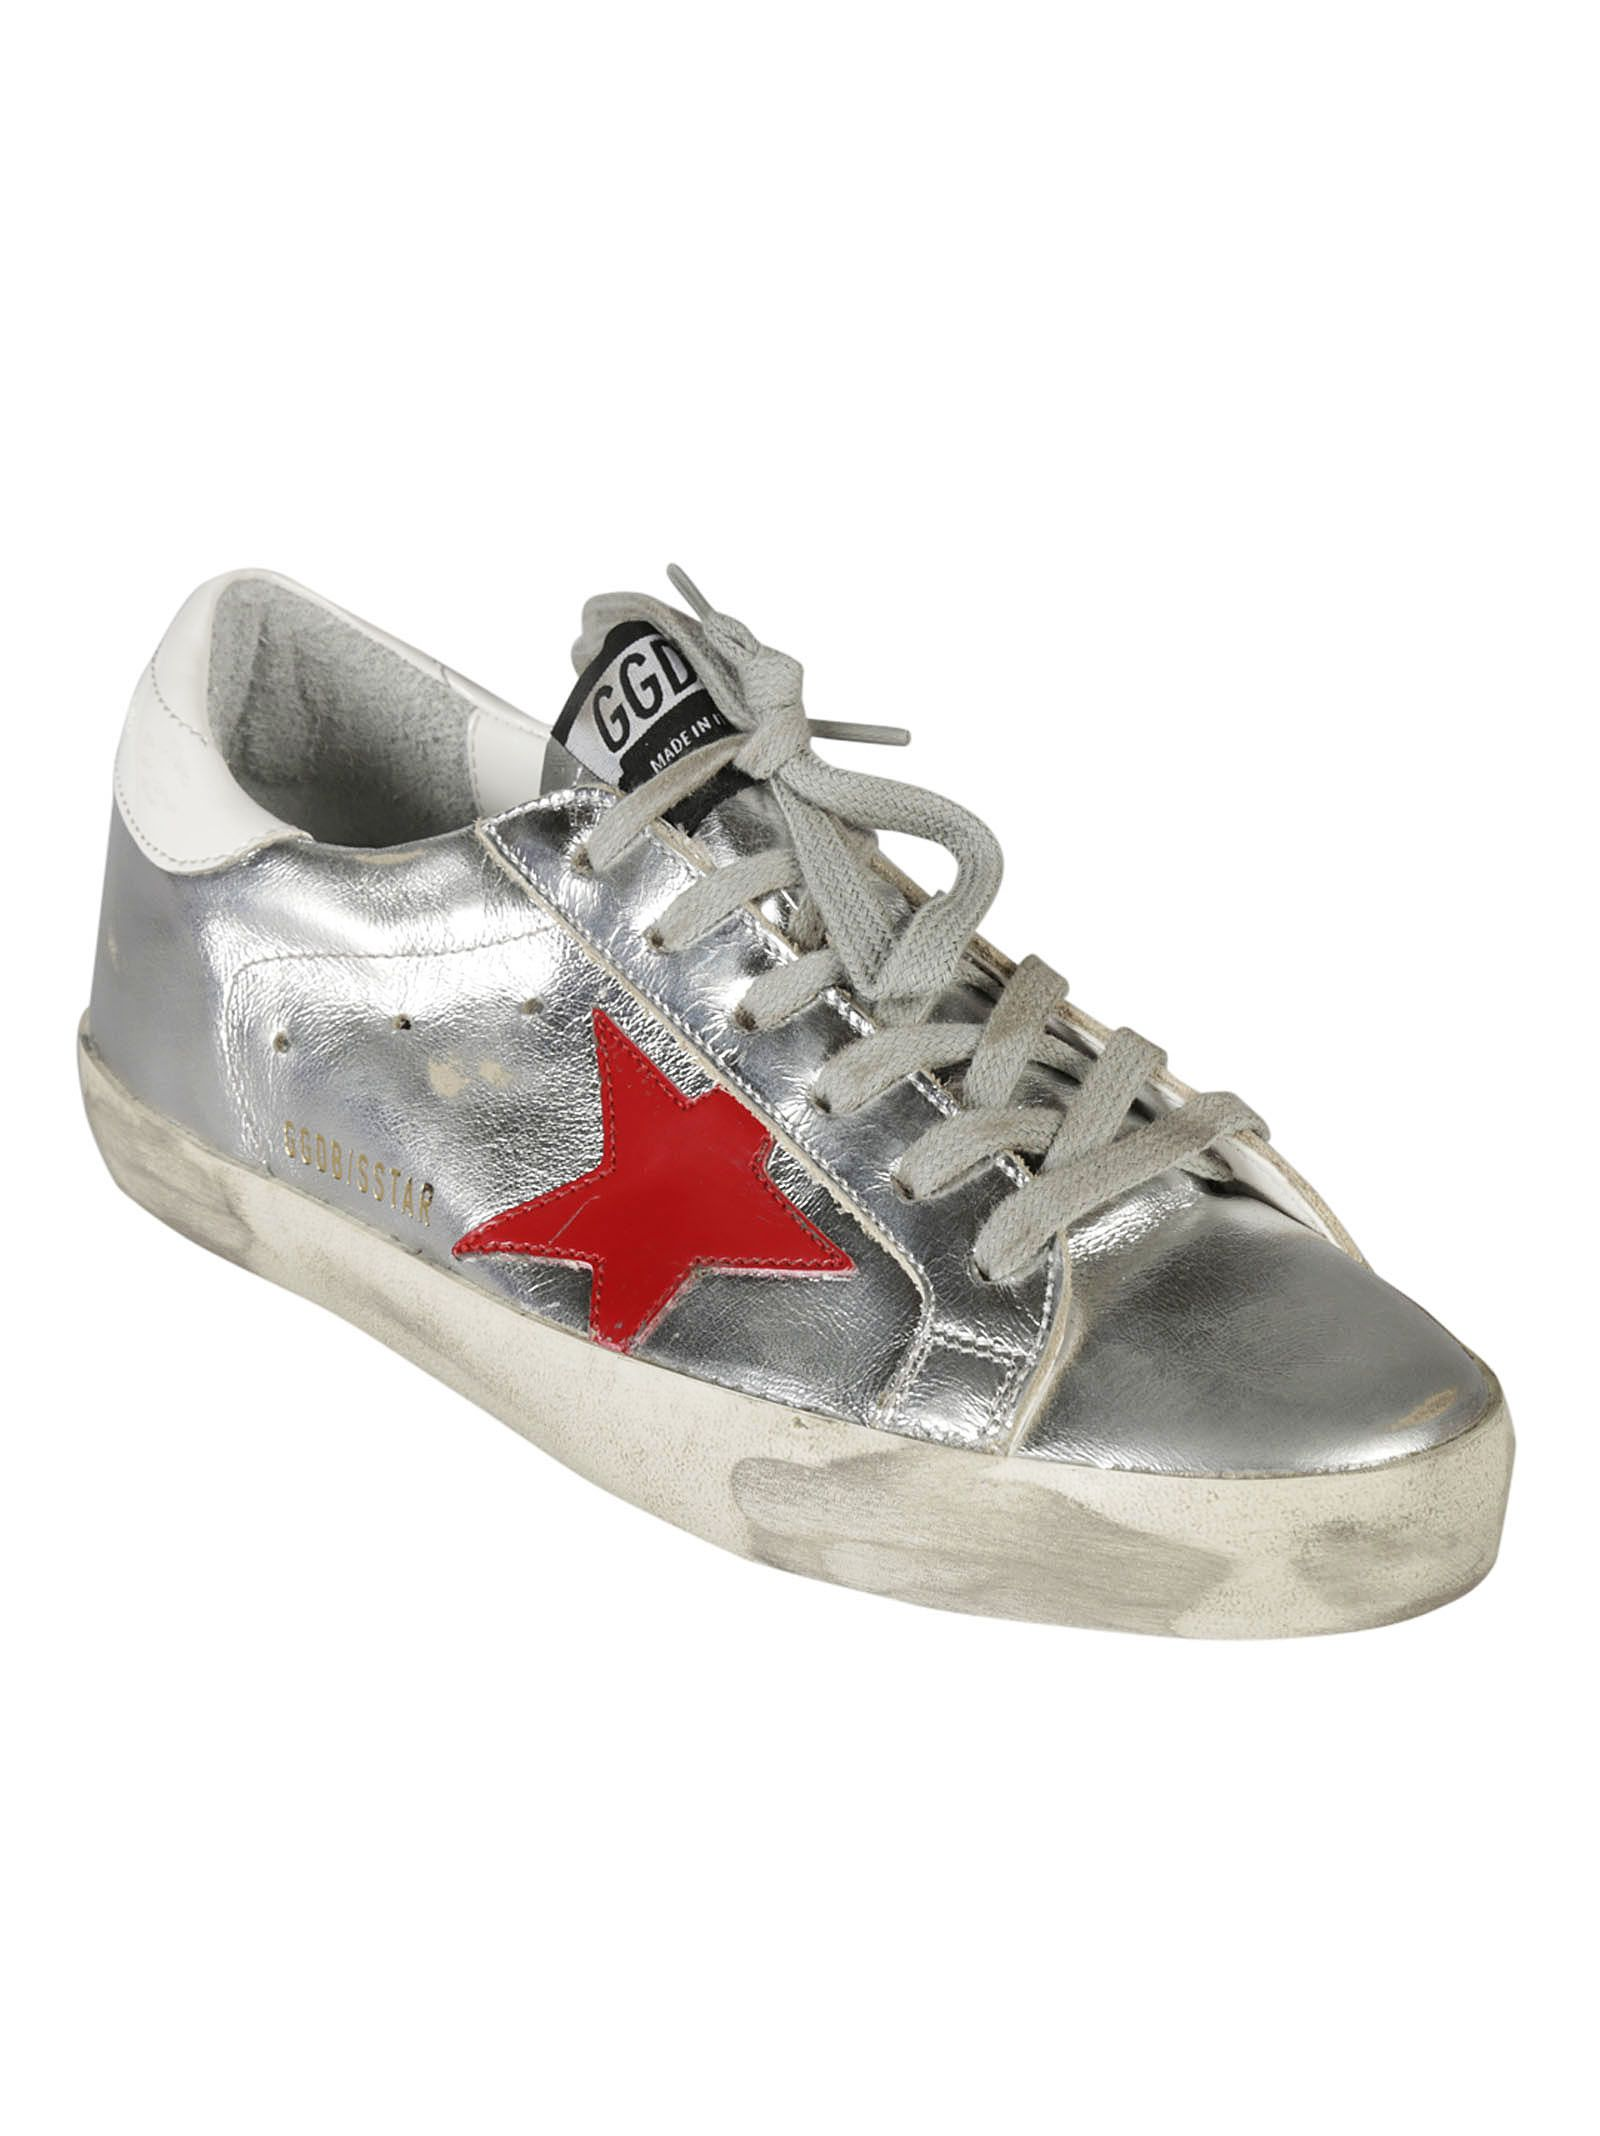 golden goose golden goose deluxe brand superstar sneakers silver women 39 s sneakers italist. Black Bedroom Furniture Sets. Home Design Ideas